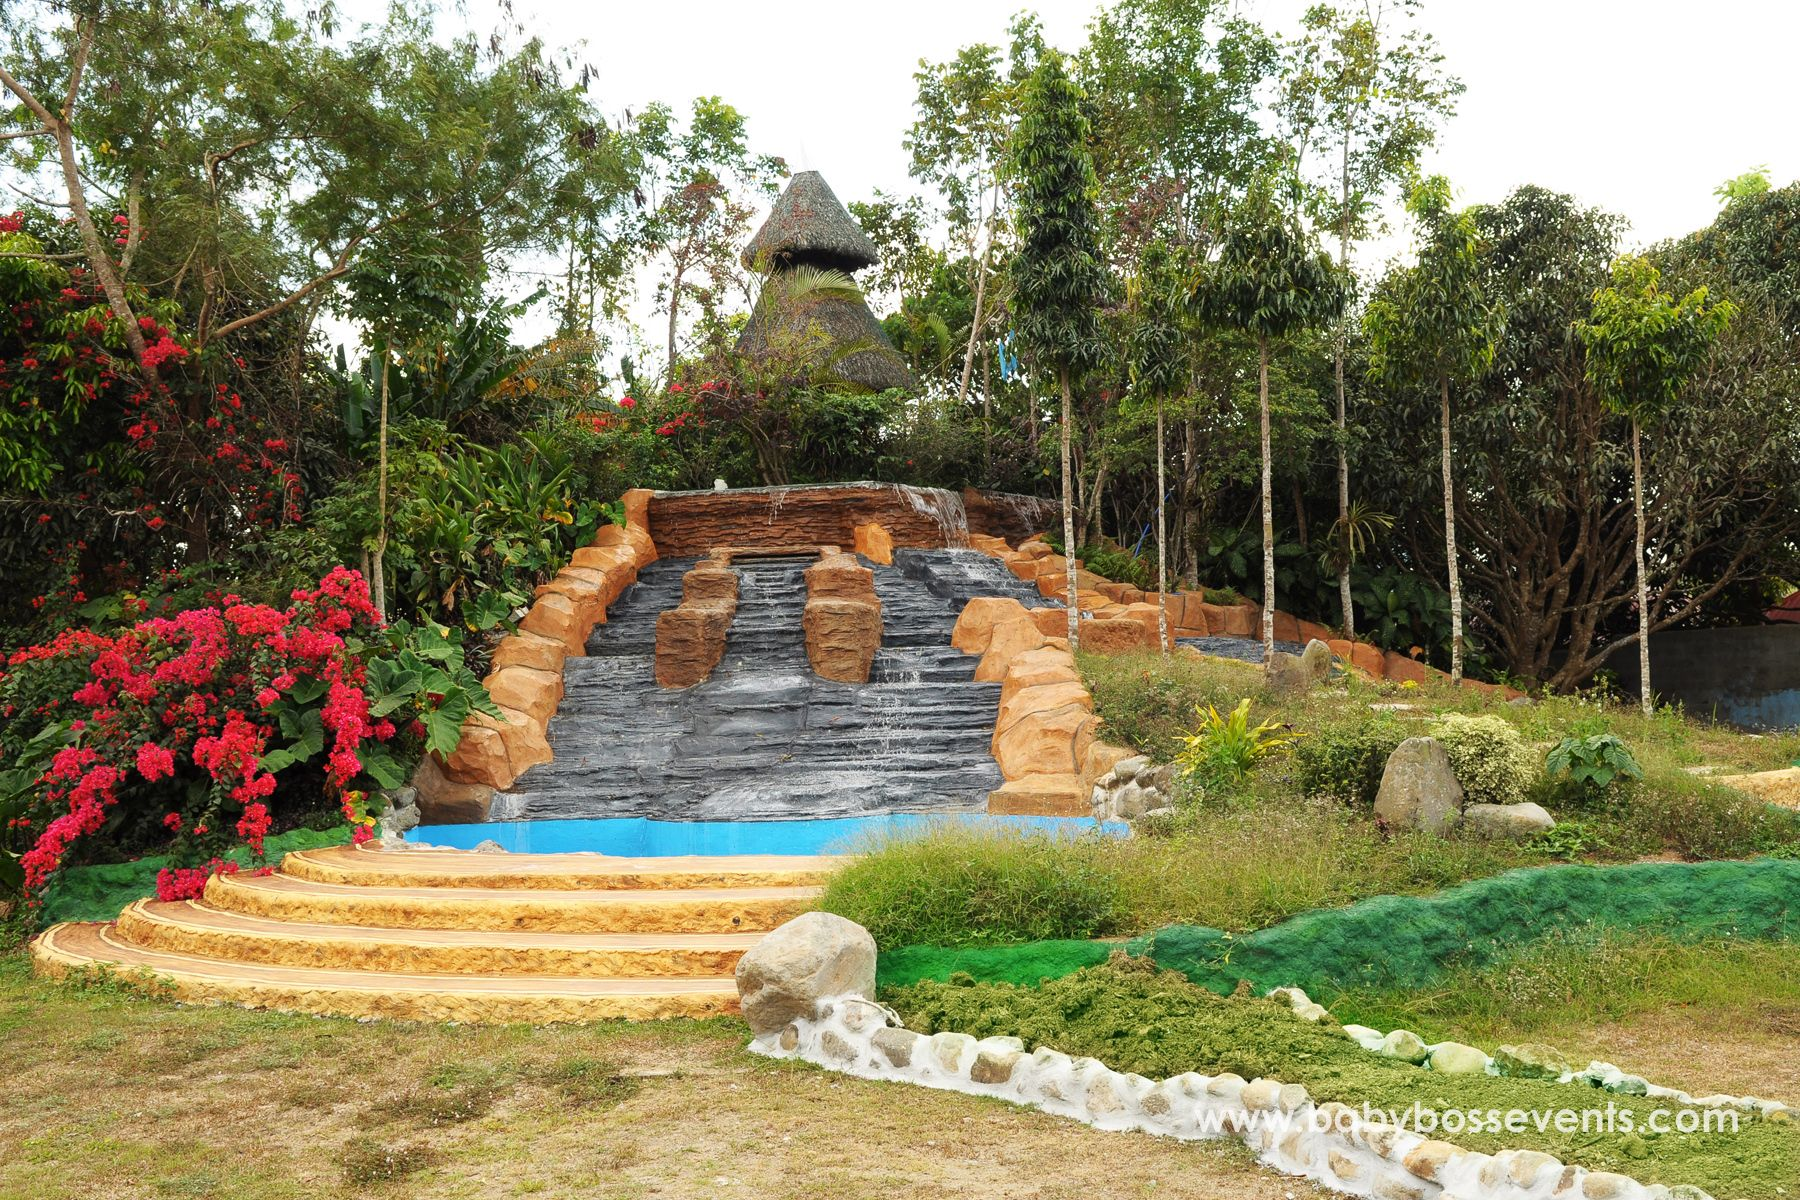 El Madero Farm Resort In Mataas Na Kahoy Batangas Places To Go Pinterest Resorts And